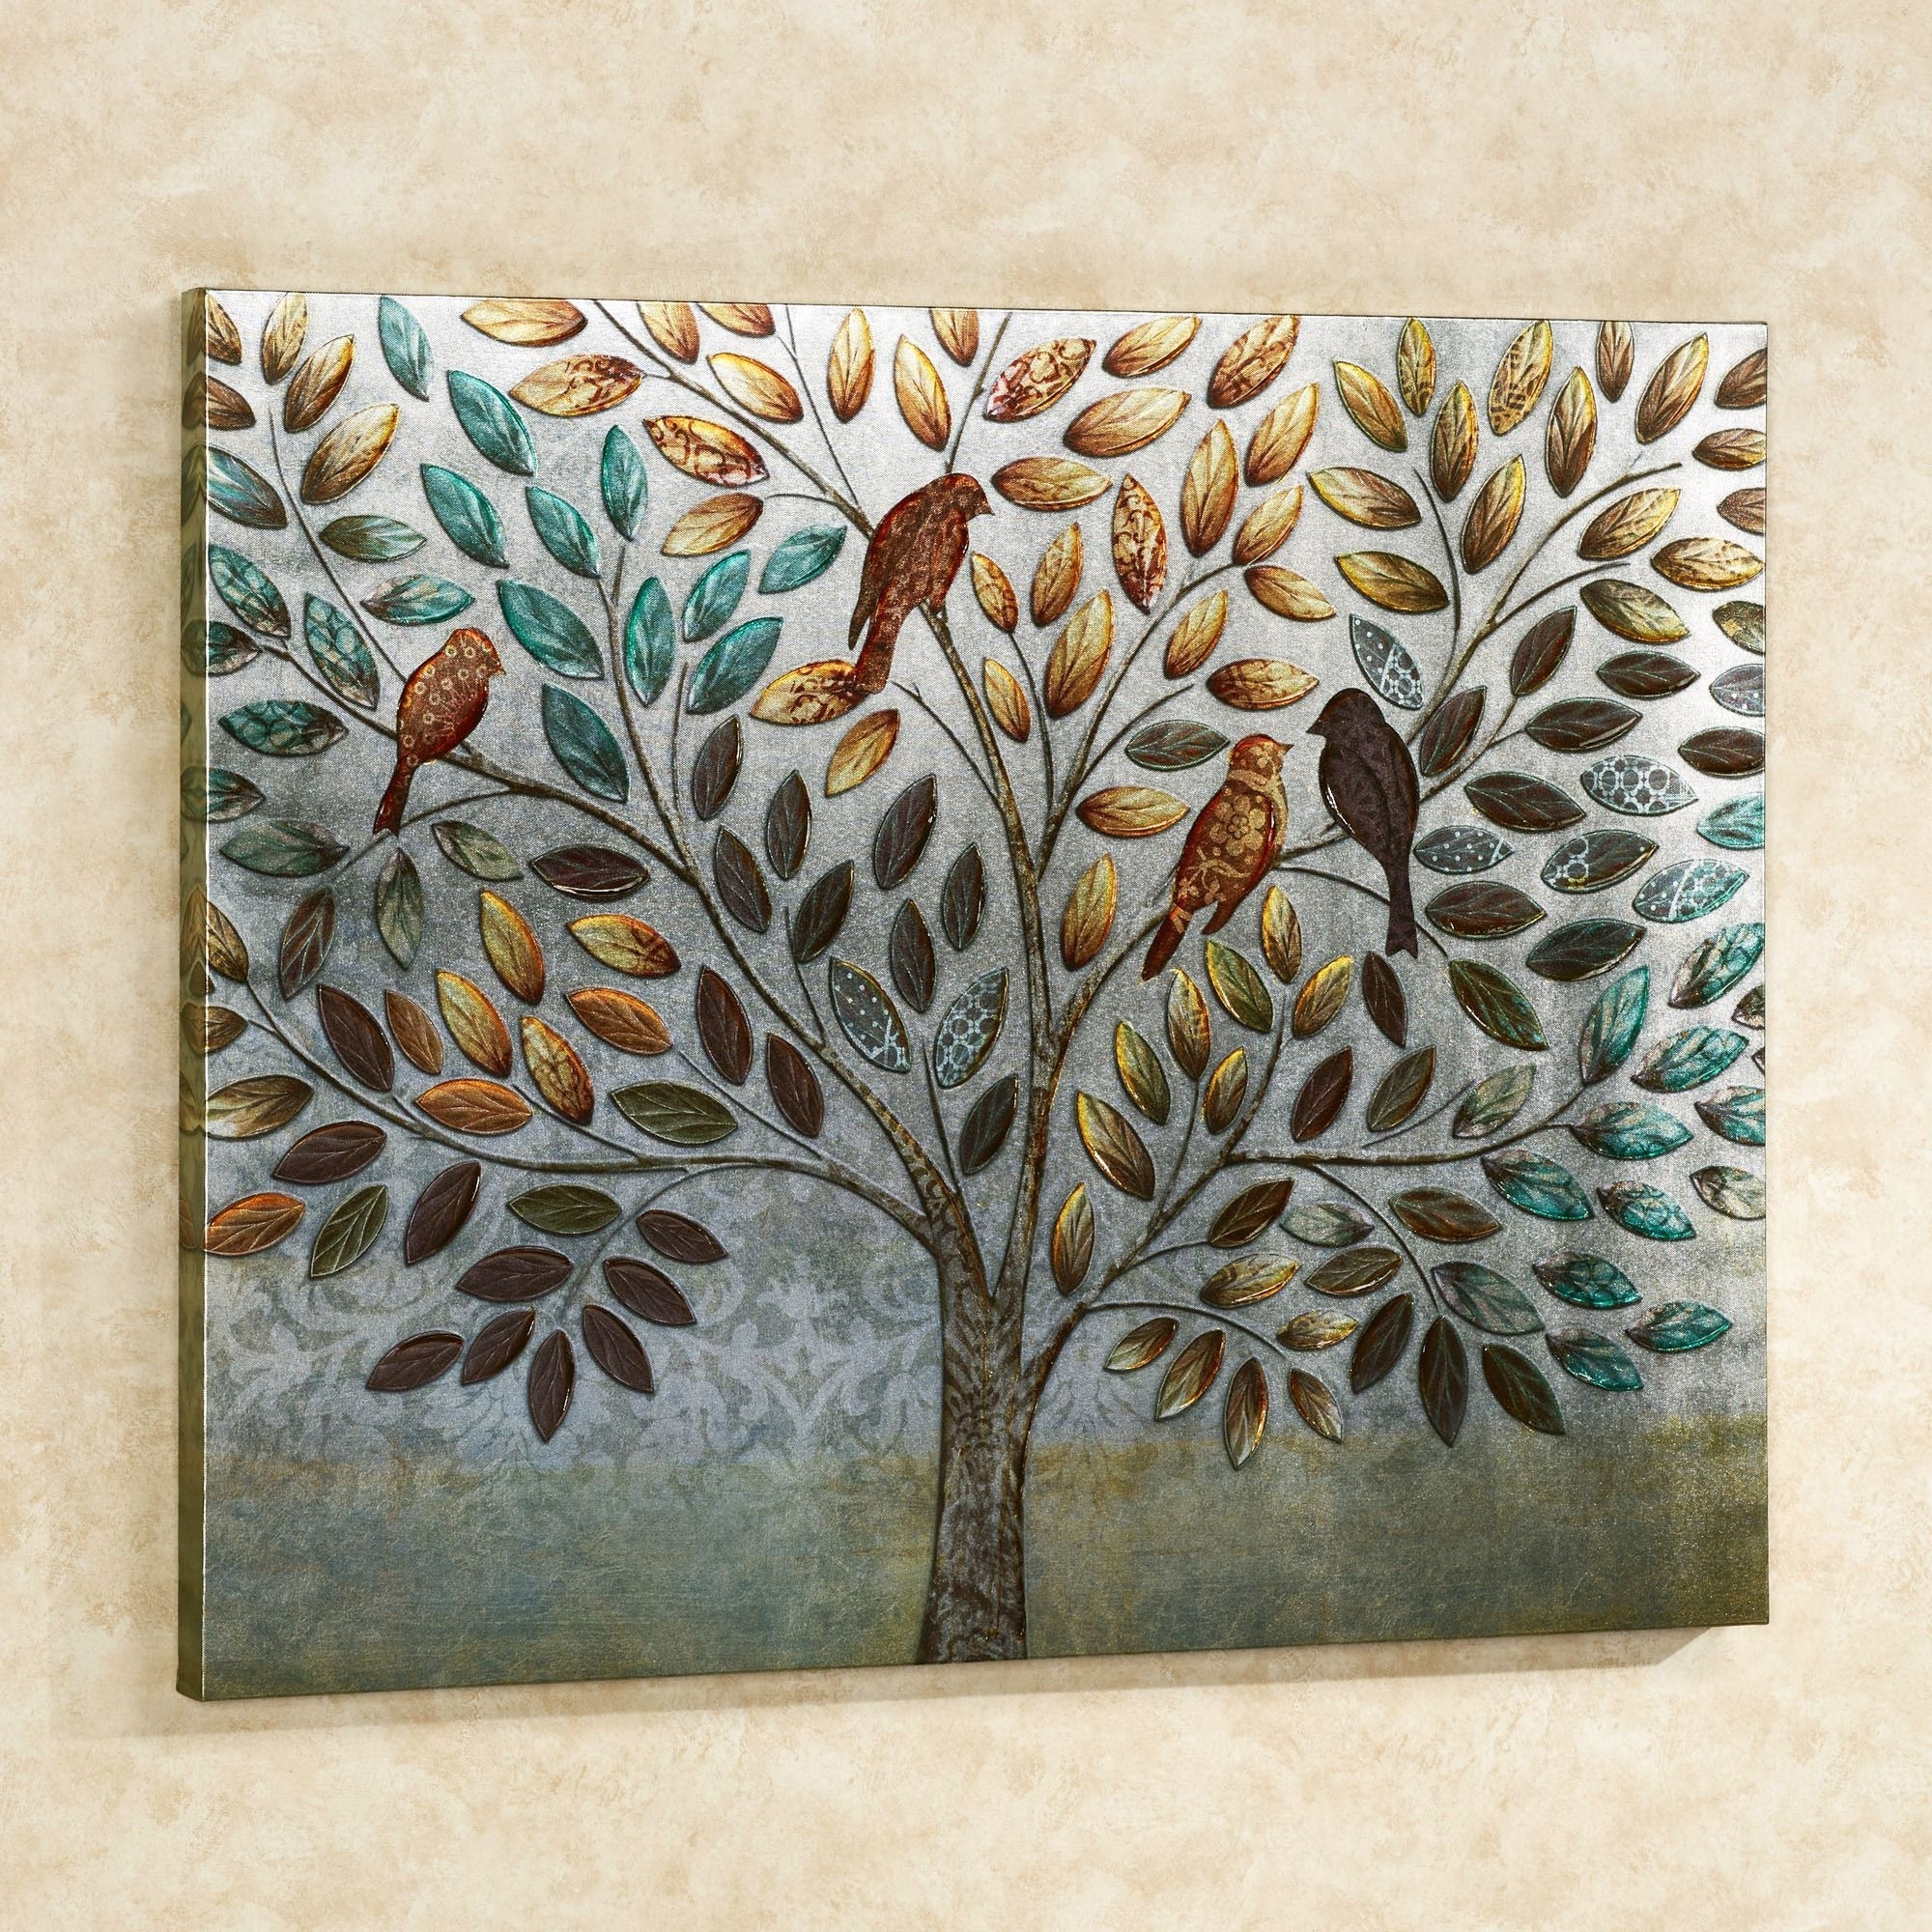 Natures Splendor Birds In Tree Canvas Wall Art With Regard To Current Touch Of Class Wall Art (View 11 of 15)